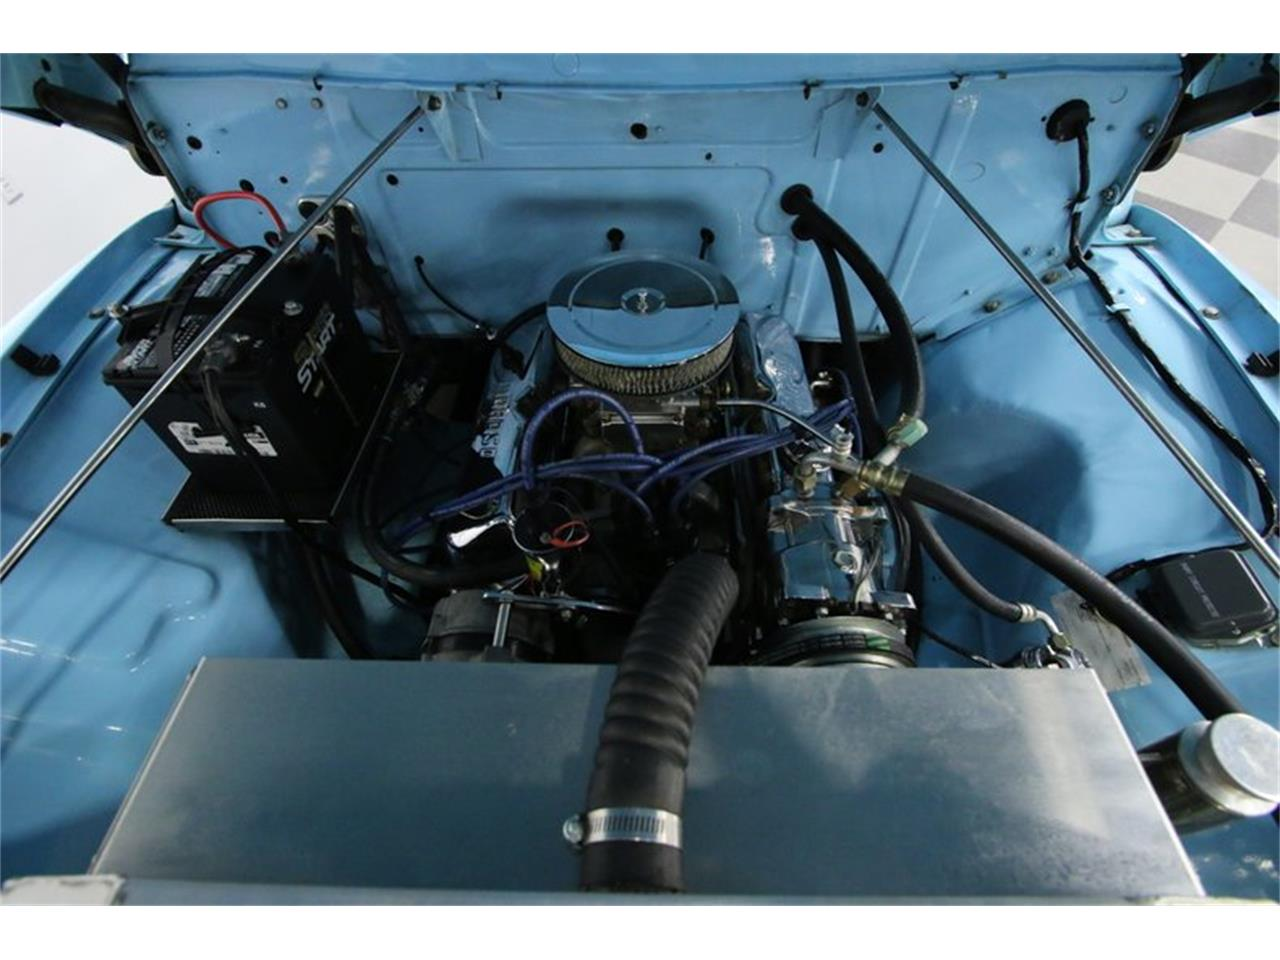 1955 Ford F100 For Sale Cc 1164605 Truck Engine Large Picture Of 55 Oym5